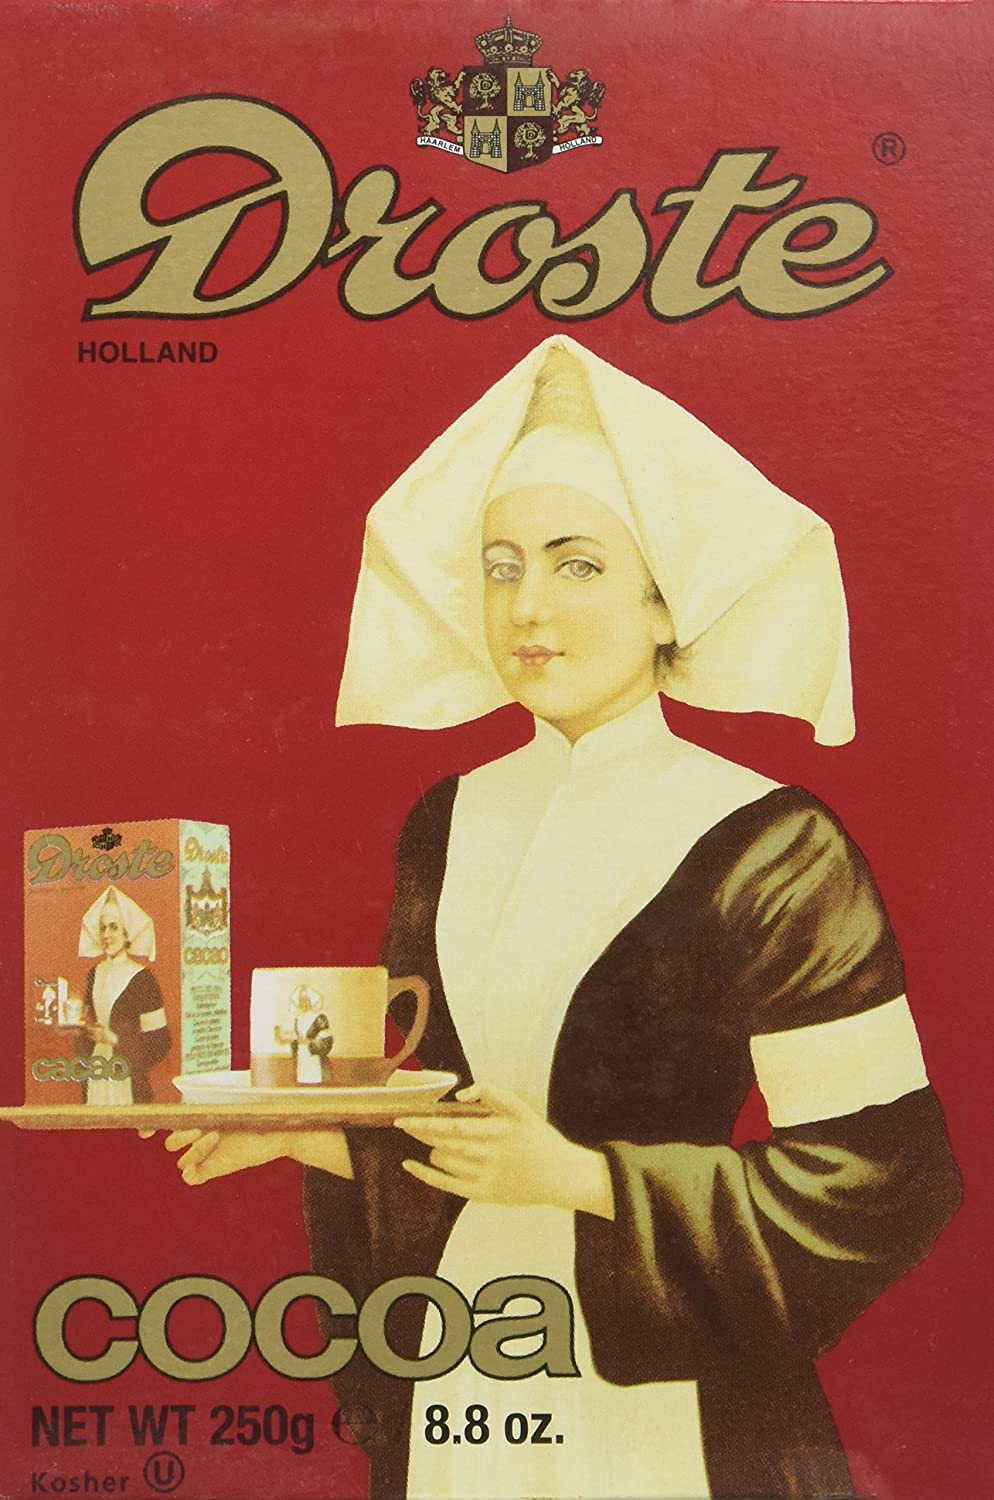 Droste Dutch Process Cocoa Powder